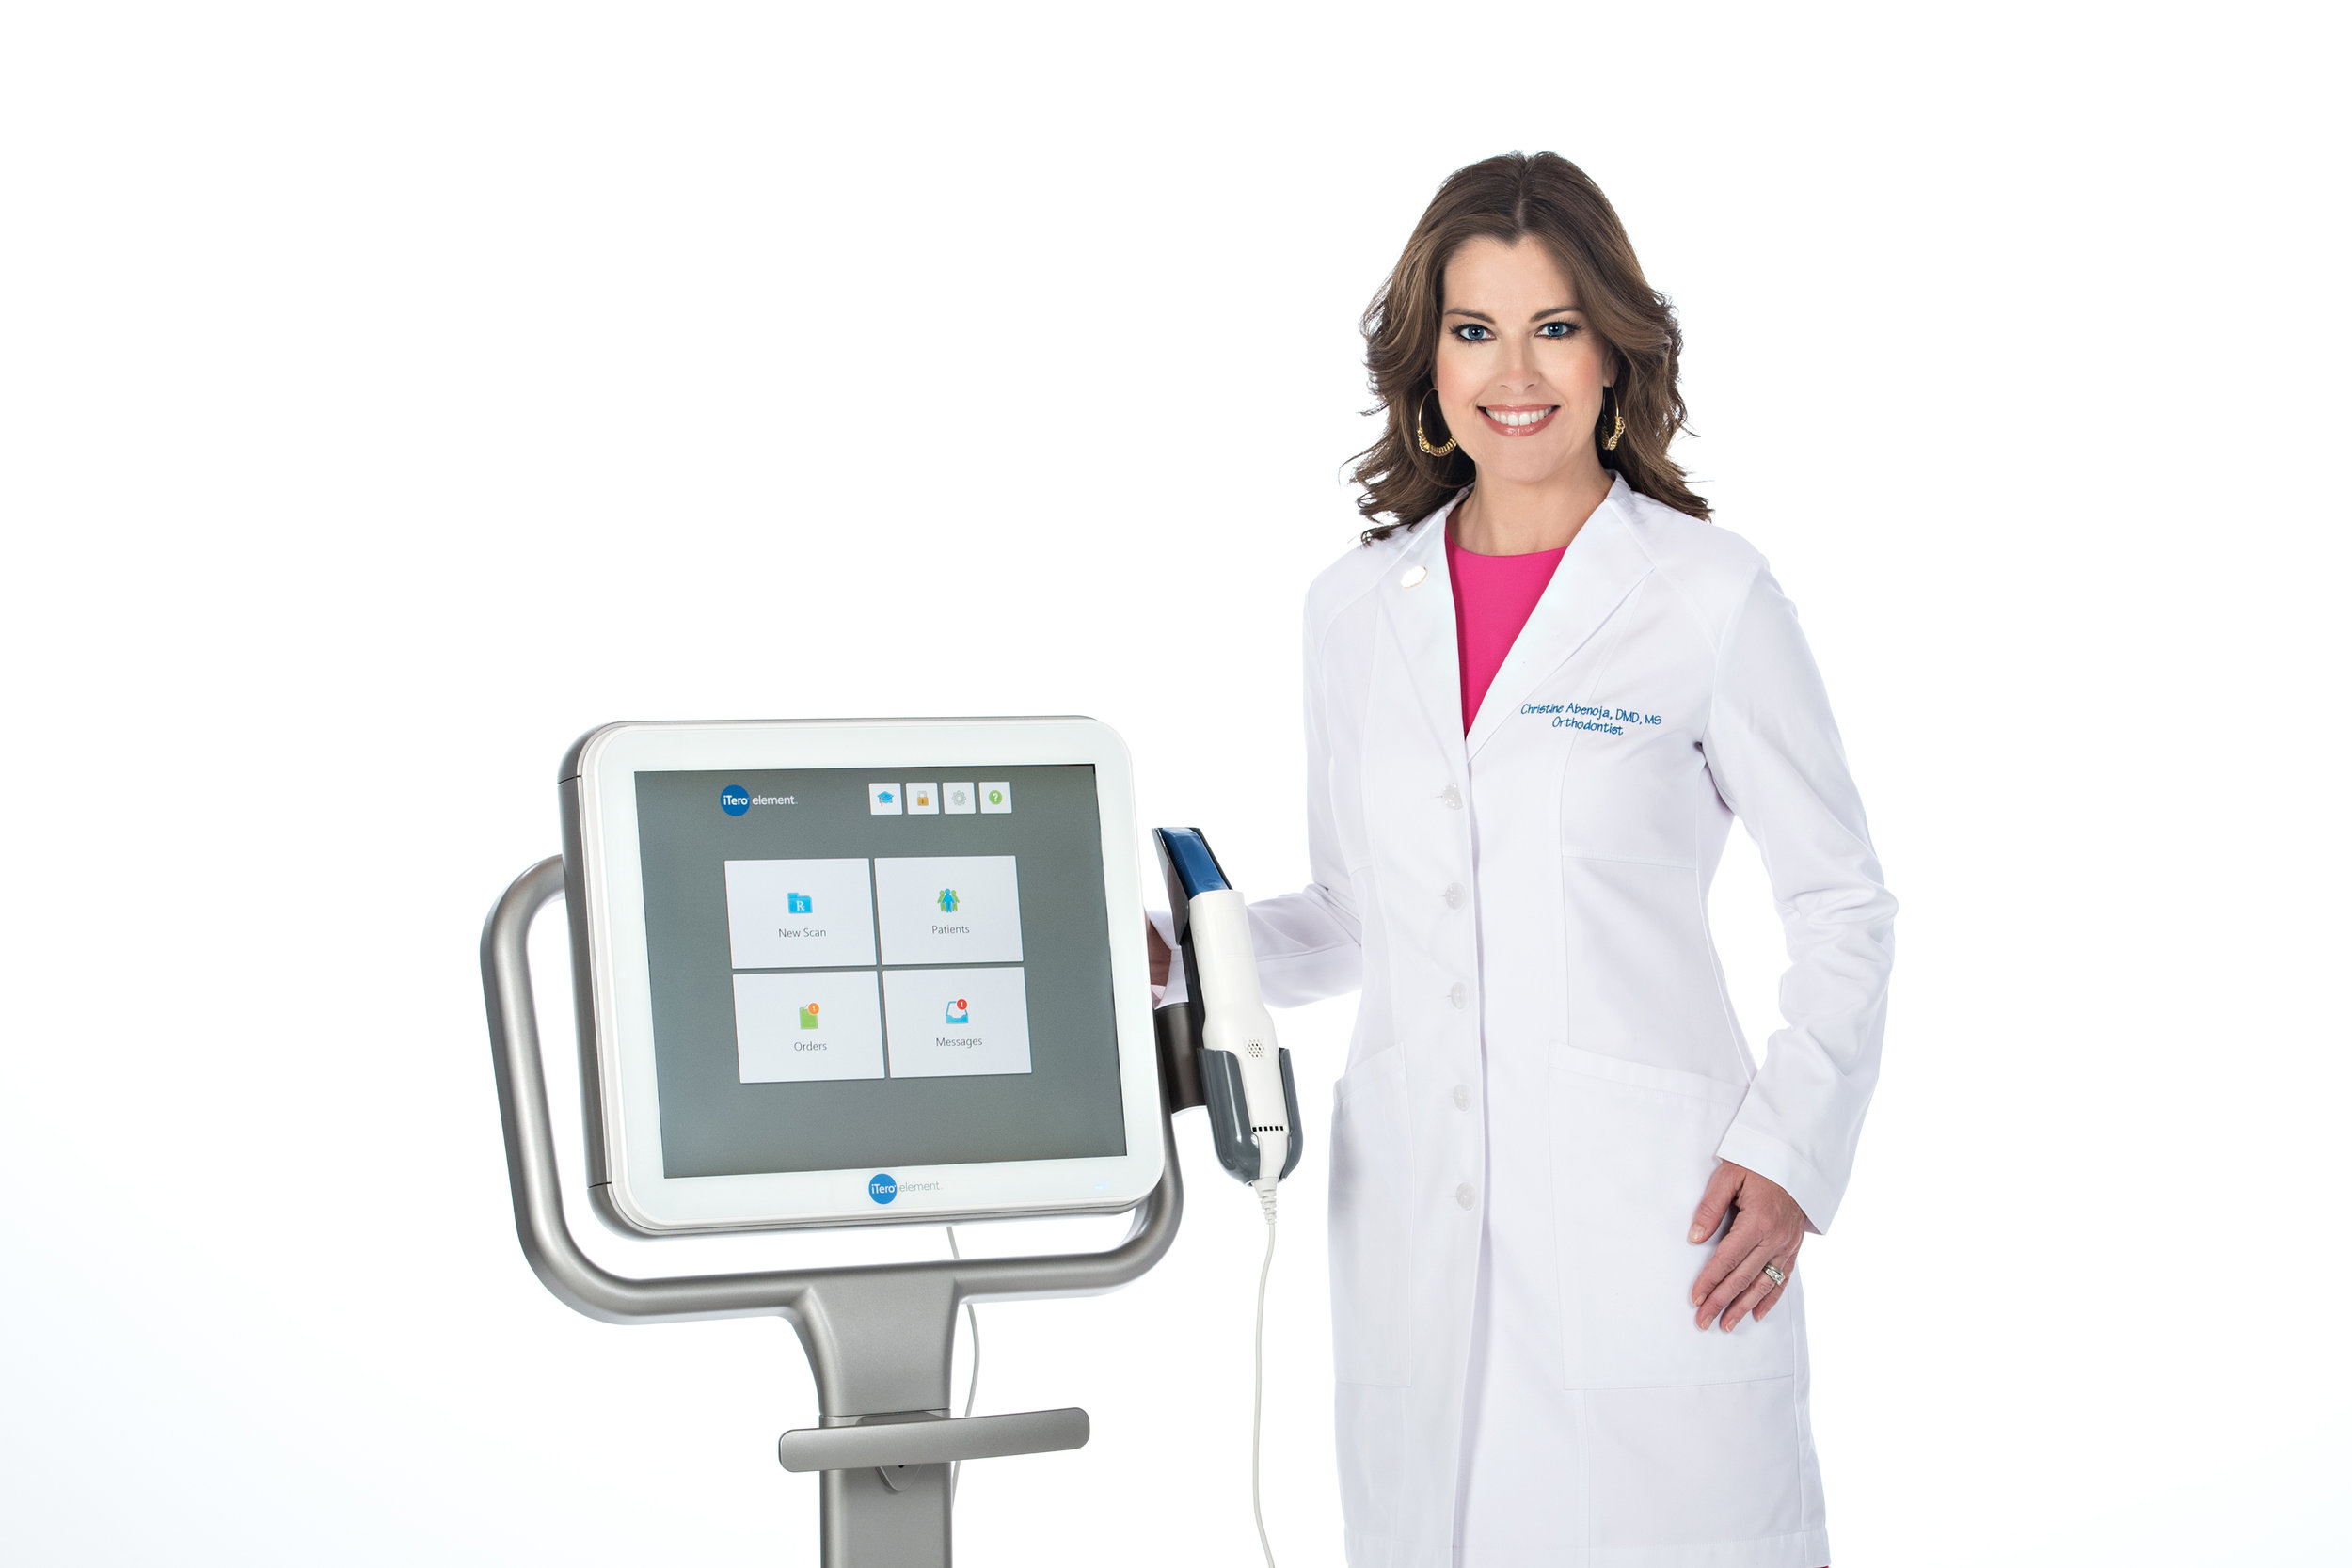 Itero 2.0 - Invisalign Certified ConnectivityUse iTero scanners to show patients the outcome of their Invisalign treatment.3X faster ClinCheck setups110X fewer rejections27X fewer fit issues3Better patient experienceSimulated outcomes for patients